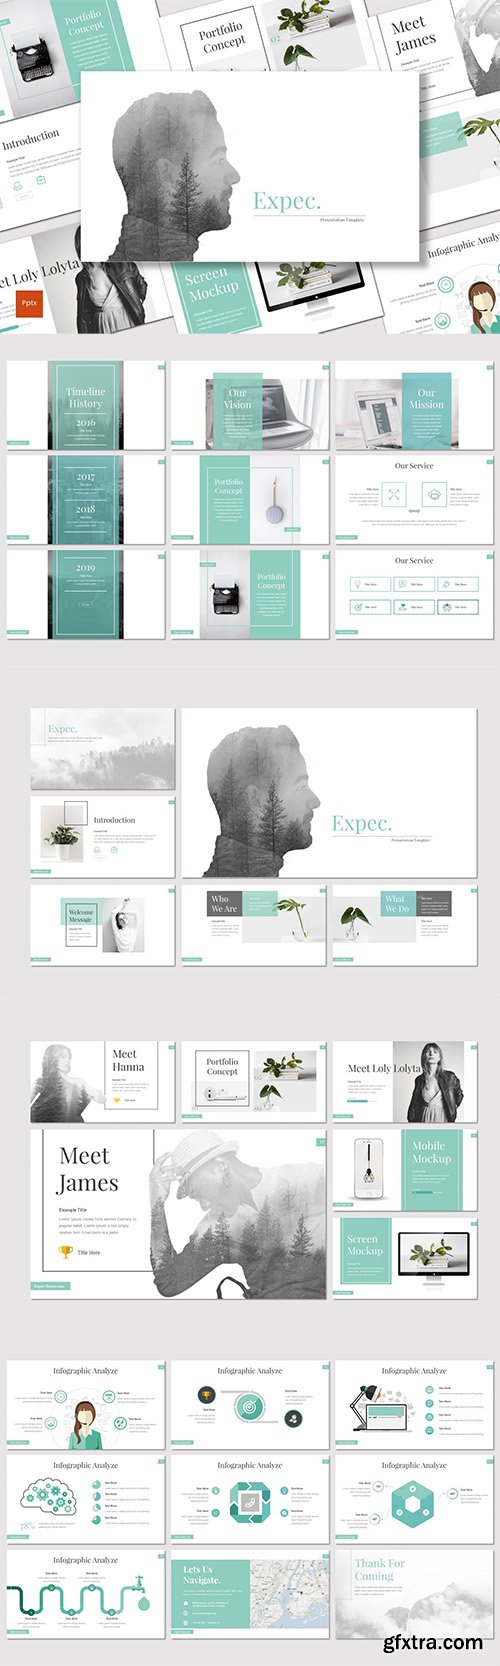 Expec - Powerpoint, Keynote and Google Slides Templates